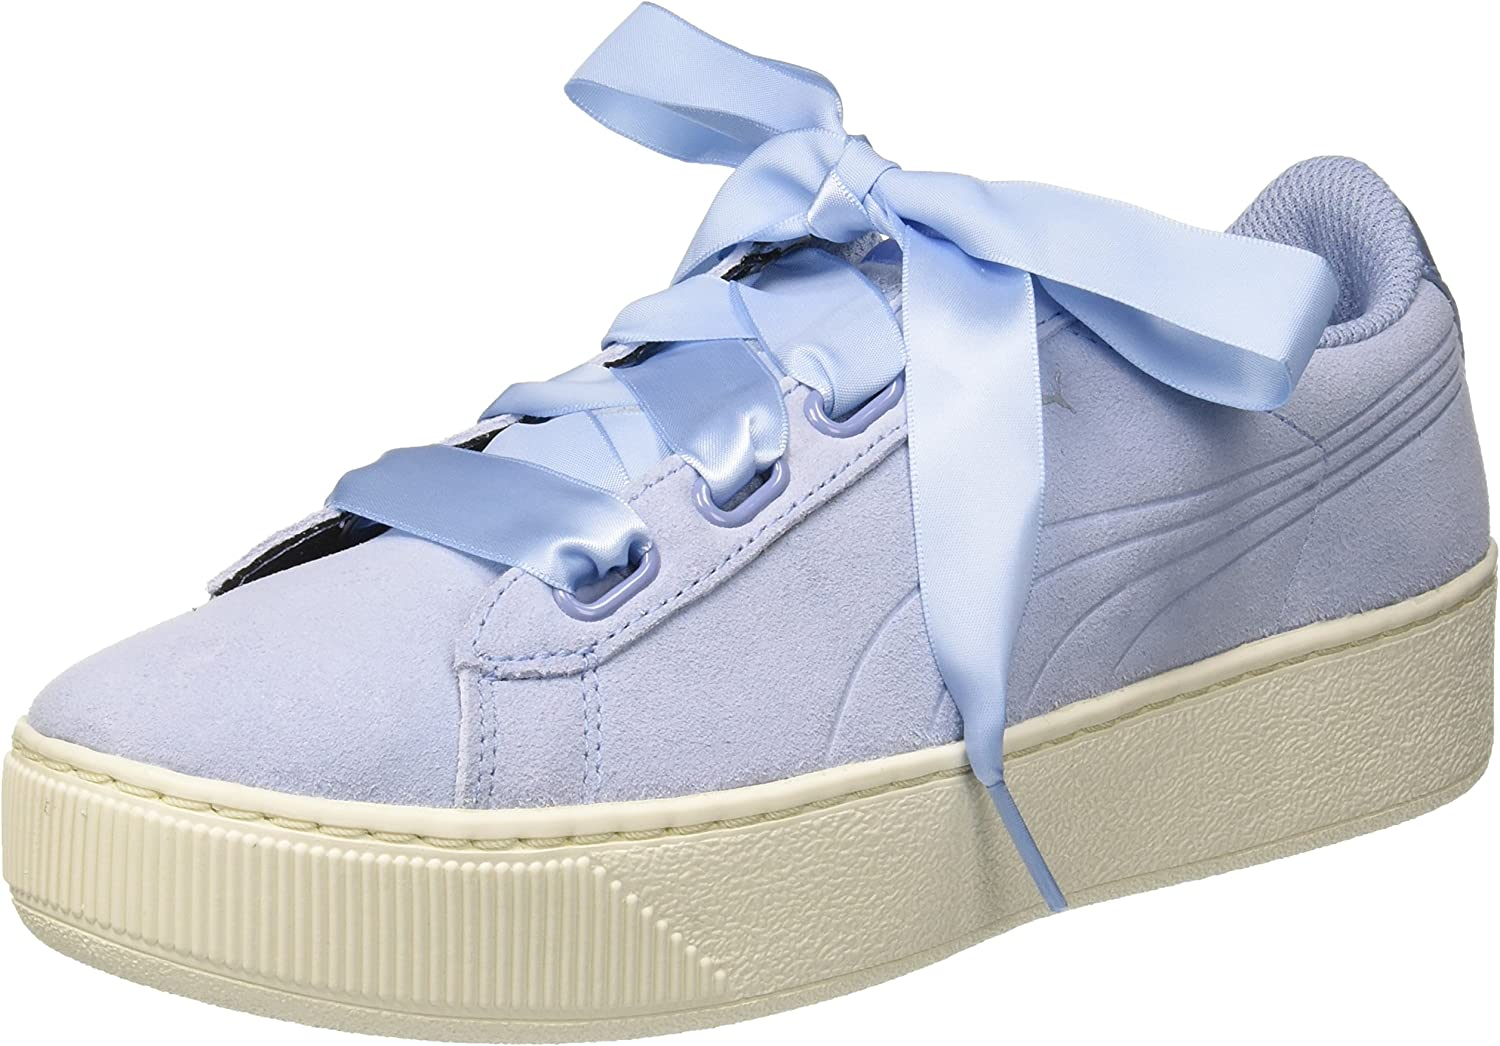 PUMA Women's Vikky Platform Ribbon S Low-Top Sneakers, Cerulean-Cerulean, 5.5 UK